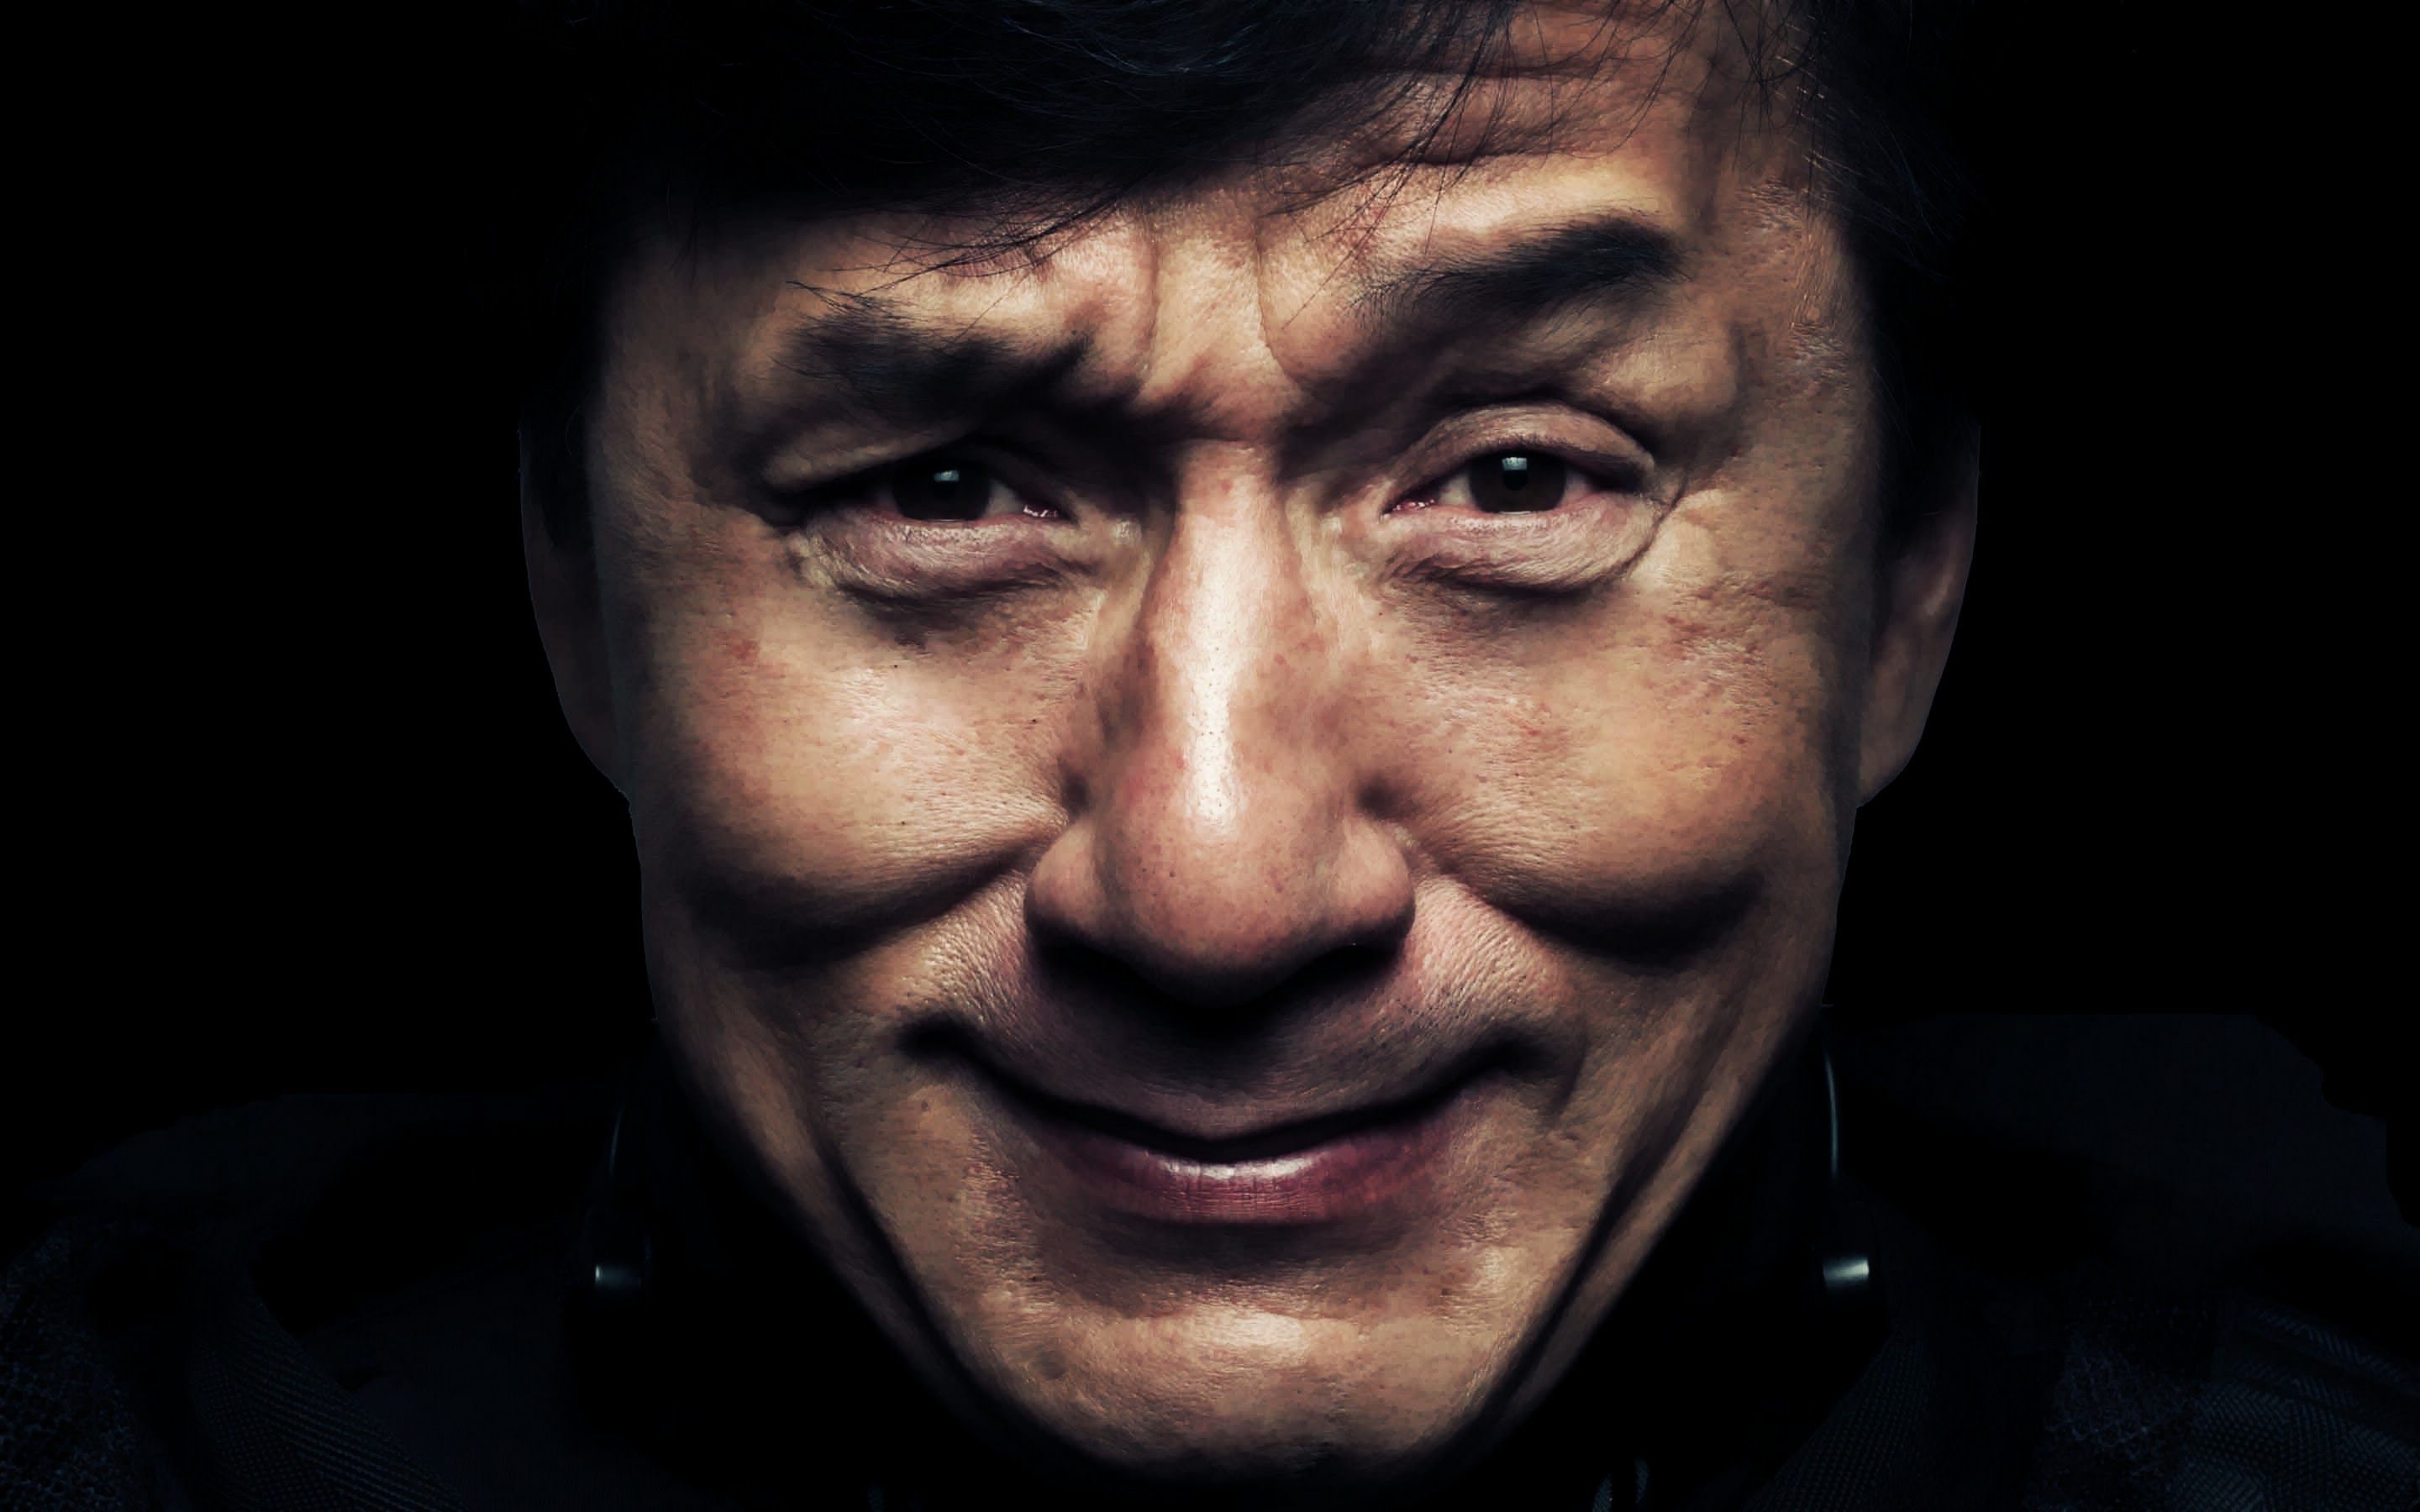 Jackie Chan Chinese Martial artist, Actor, Director, Producer, Screenwriter, Action Choreographer, Singer, Stunt Director, Stunt Performer